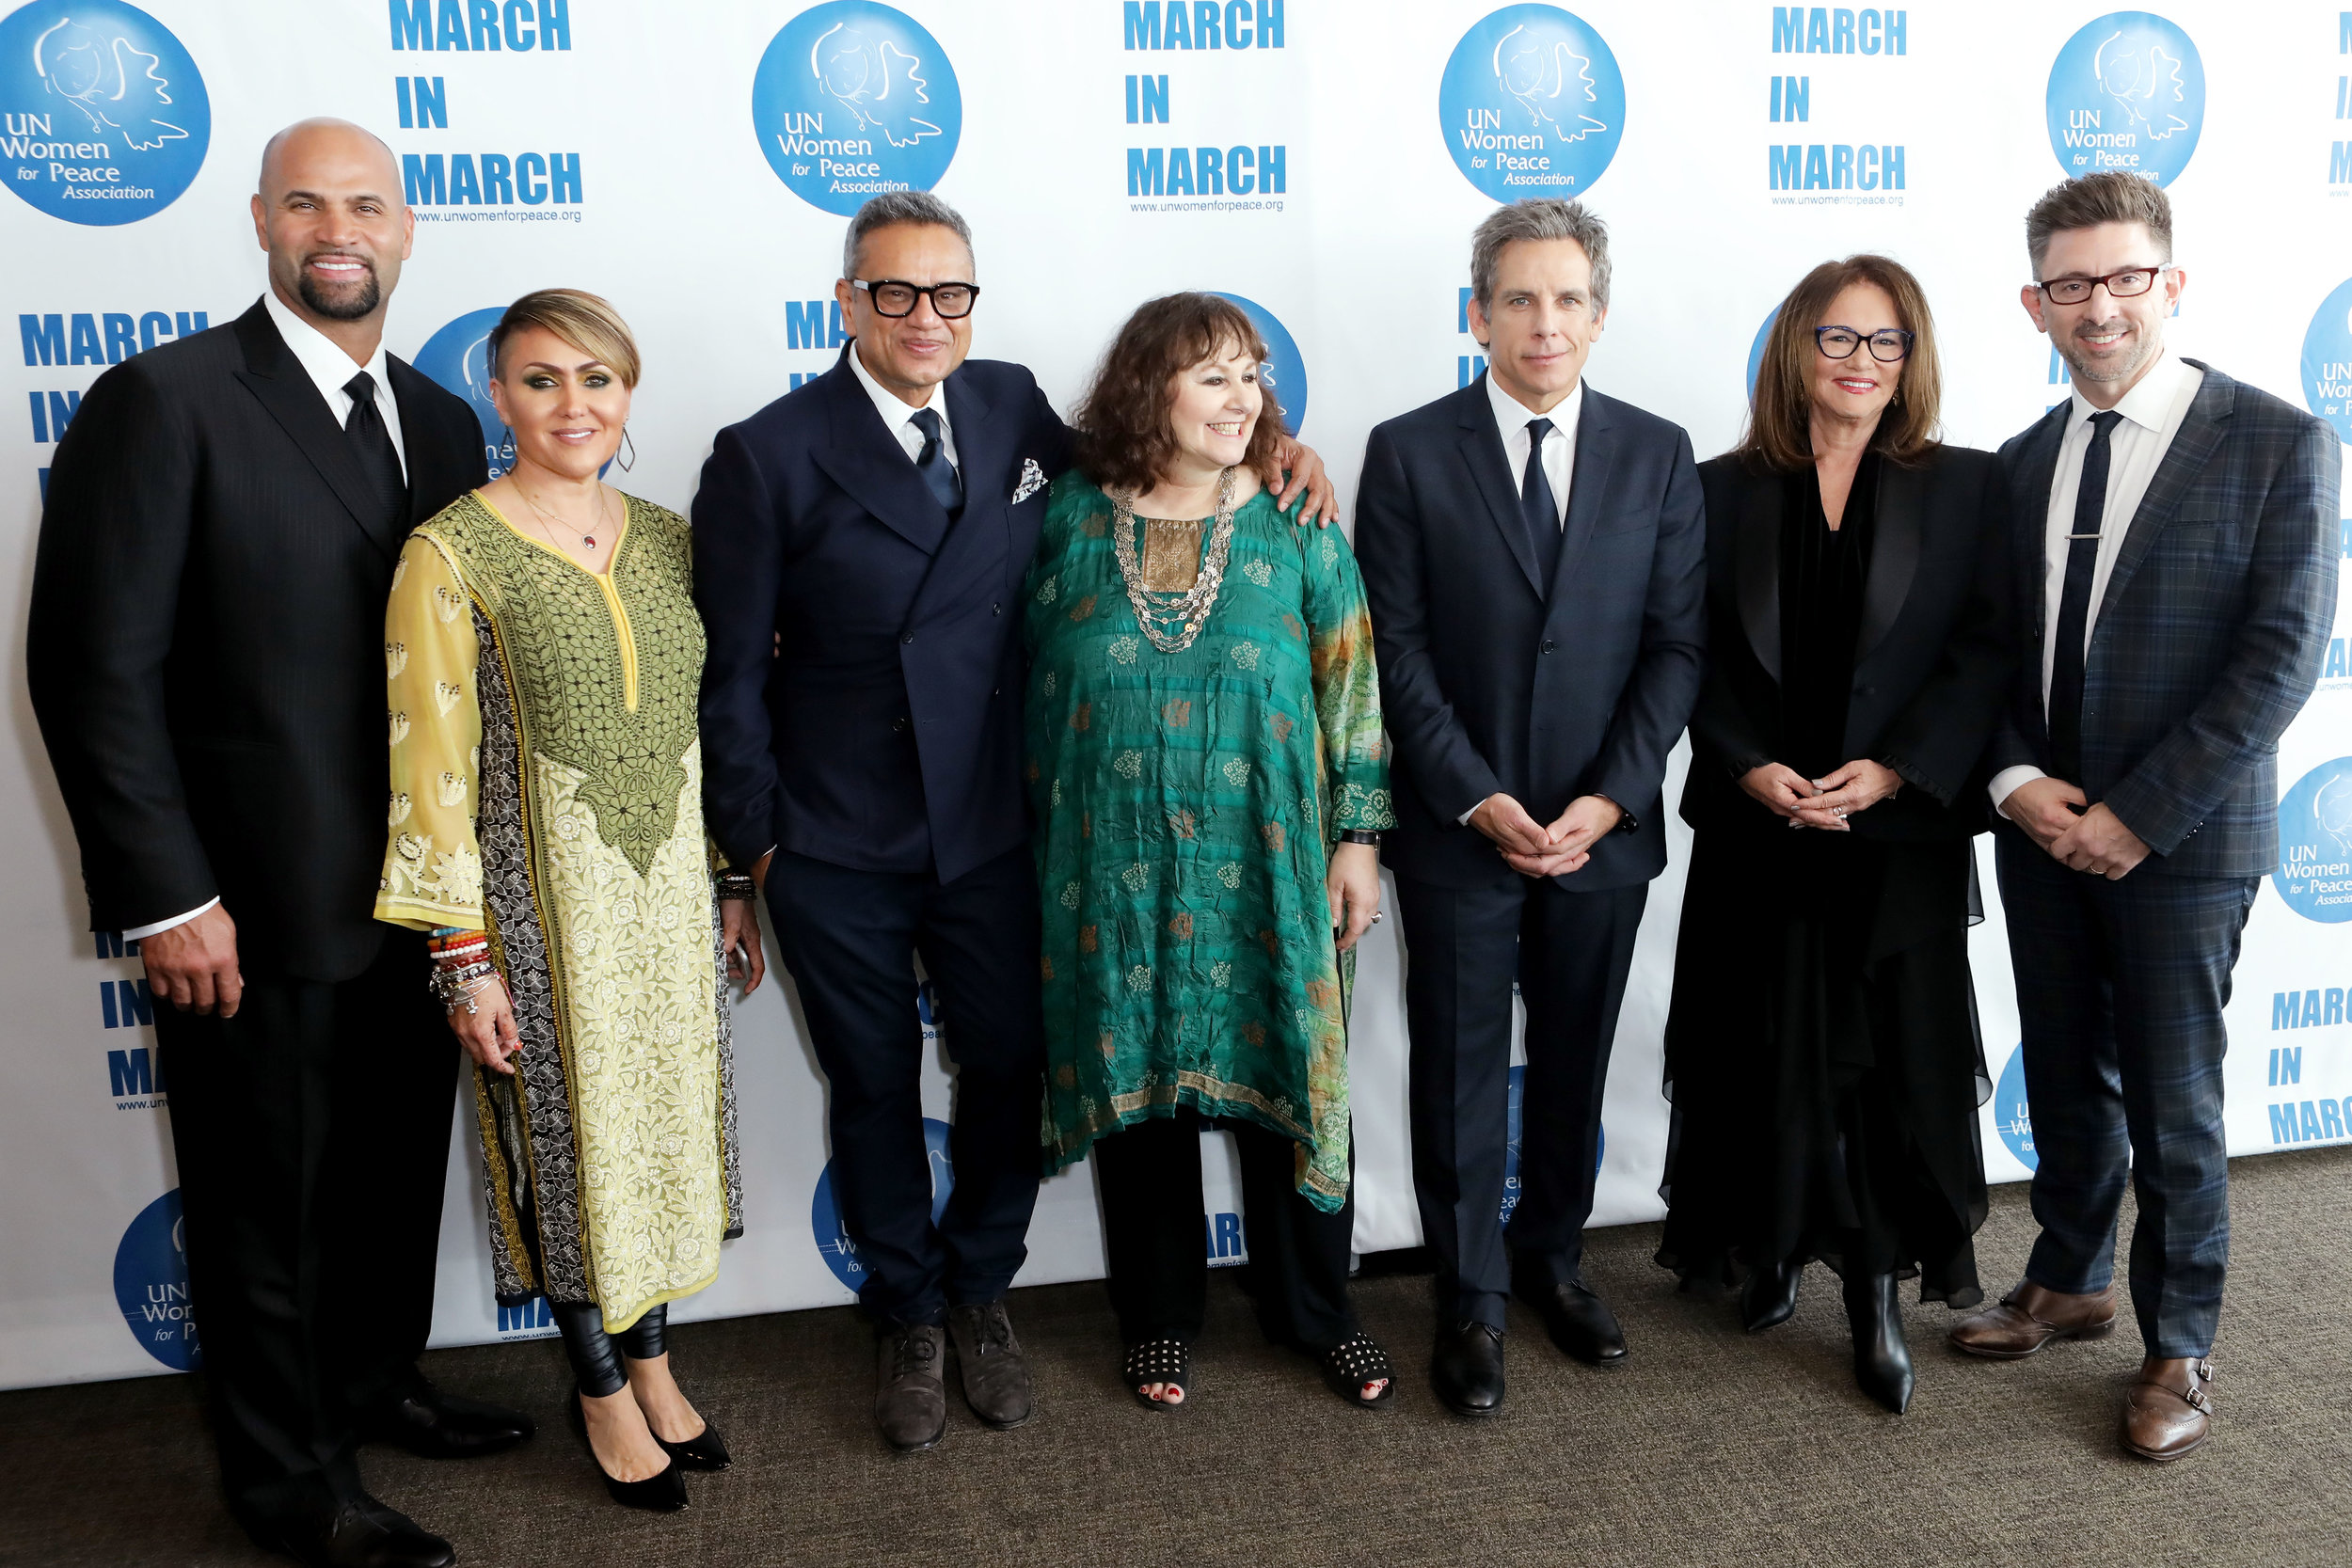 2019 UN Women for Peace Association Annual Awards Luncheon Honorees Albert Pujols, Deidre Pujols, Naeem Khan, Leslee Udwin, Ben Stiller, Robin Stern and Marc Brackett at United Nations Headquarters on March 1, 2019.